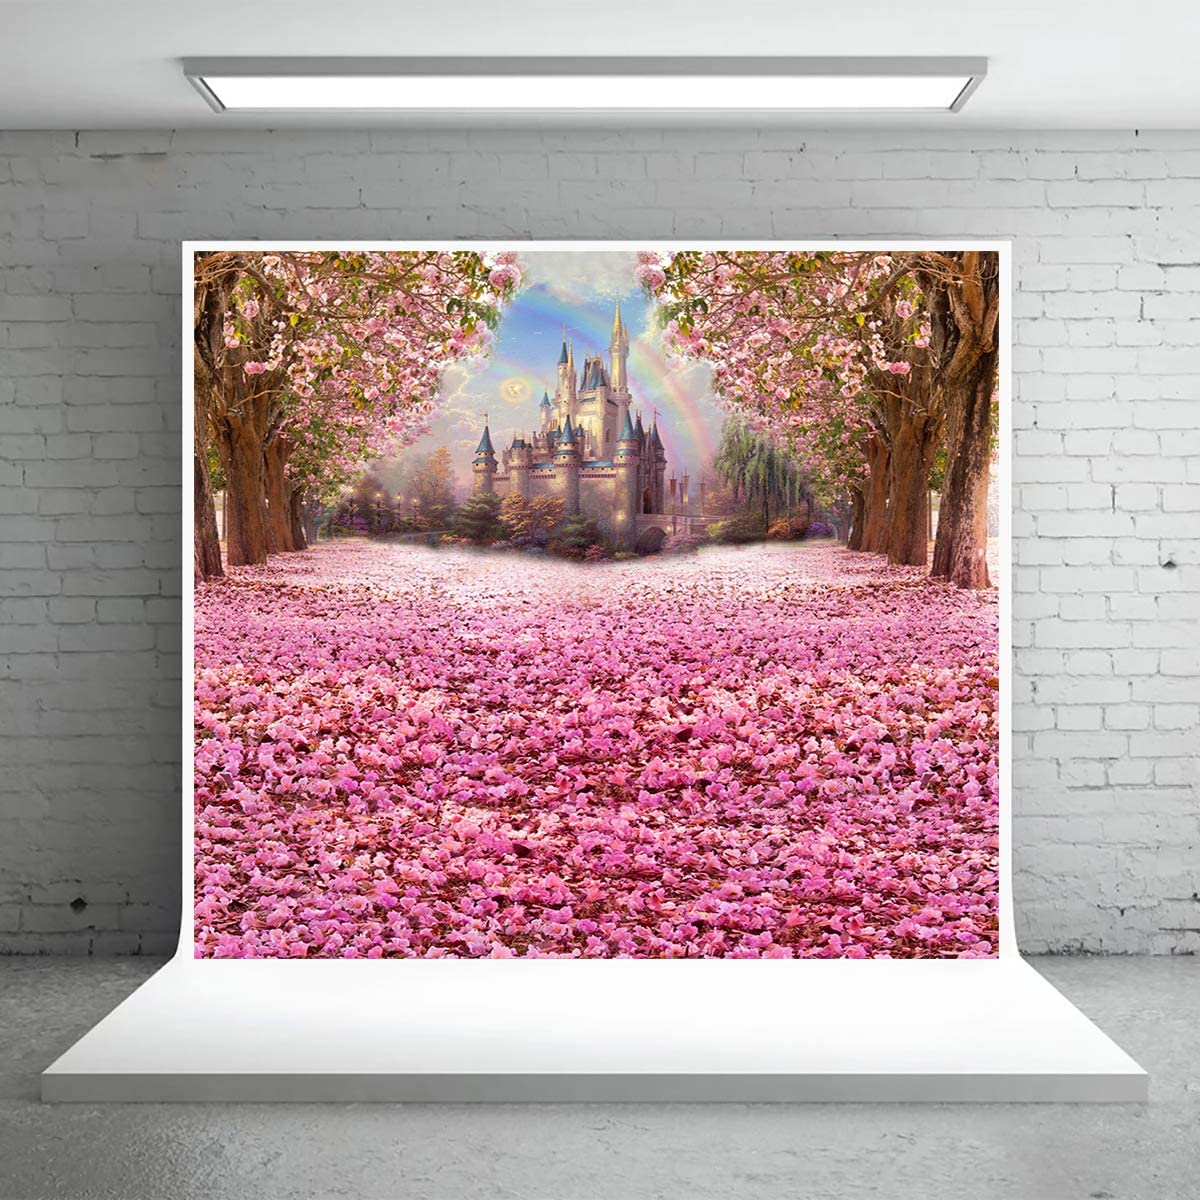 Levoo Landscape Flower Tree Background Banner Photography Studio Birthday Family Party Holiday Celebration Romantic Wedding Photography Backdrop Home Decoration 10x8ft,chy788